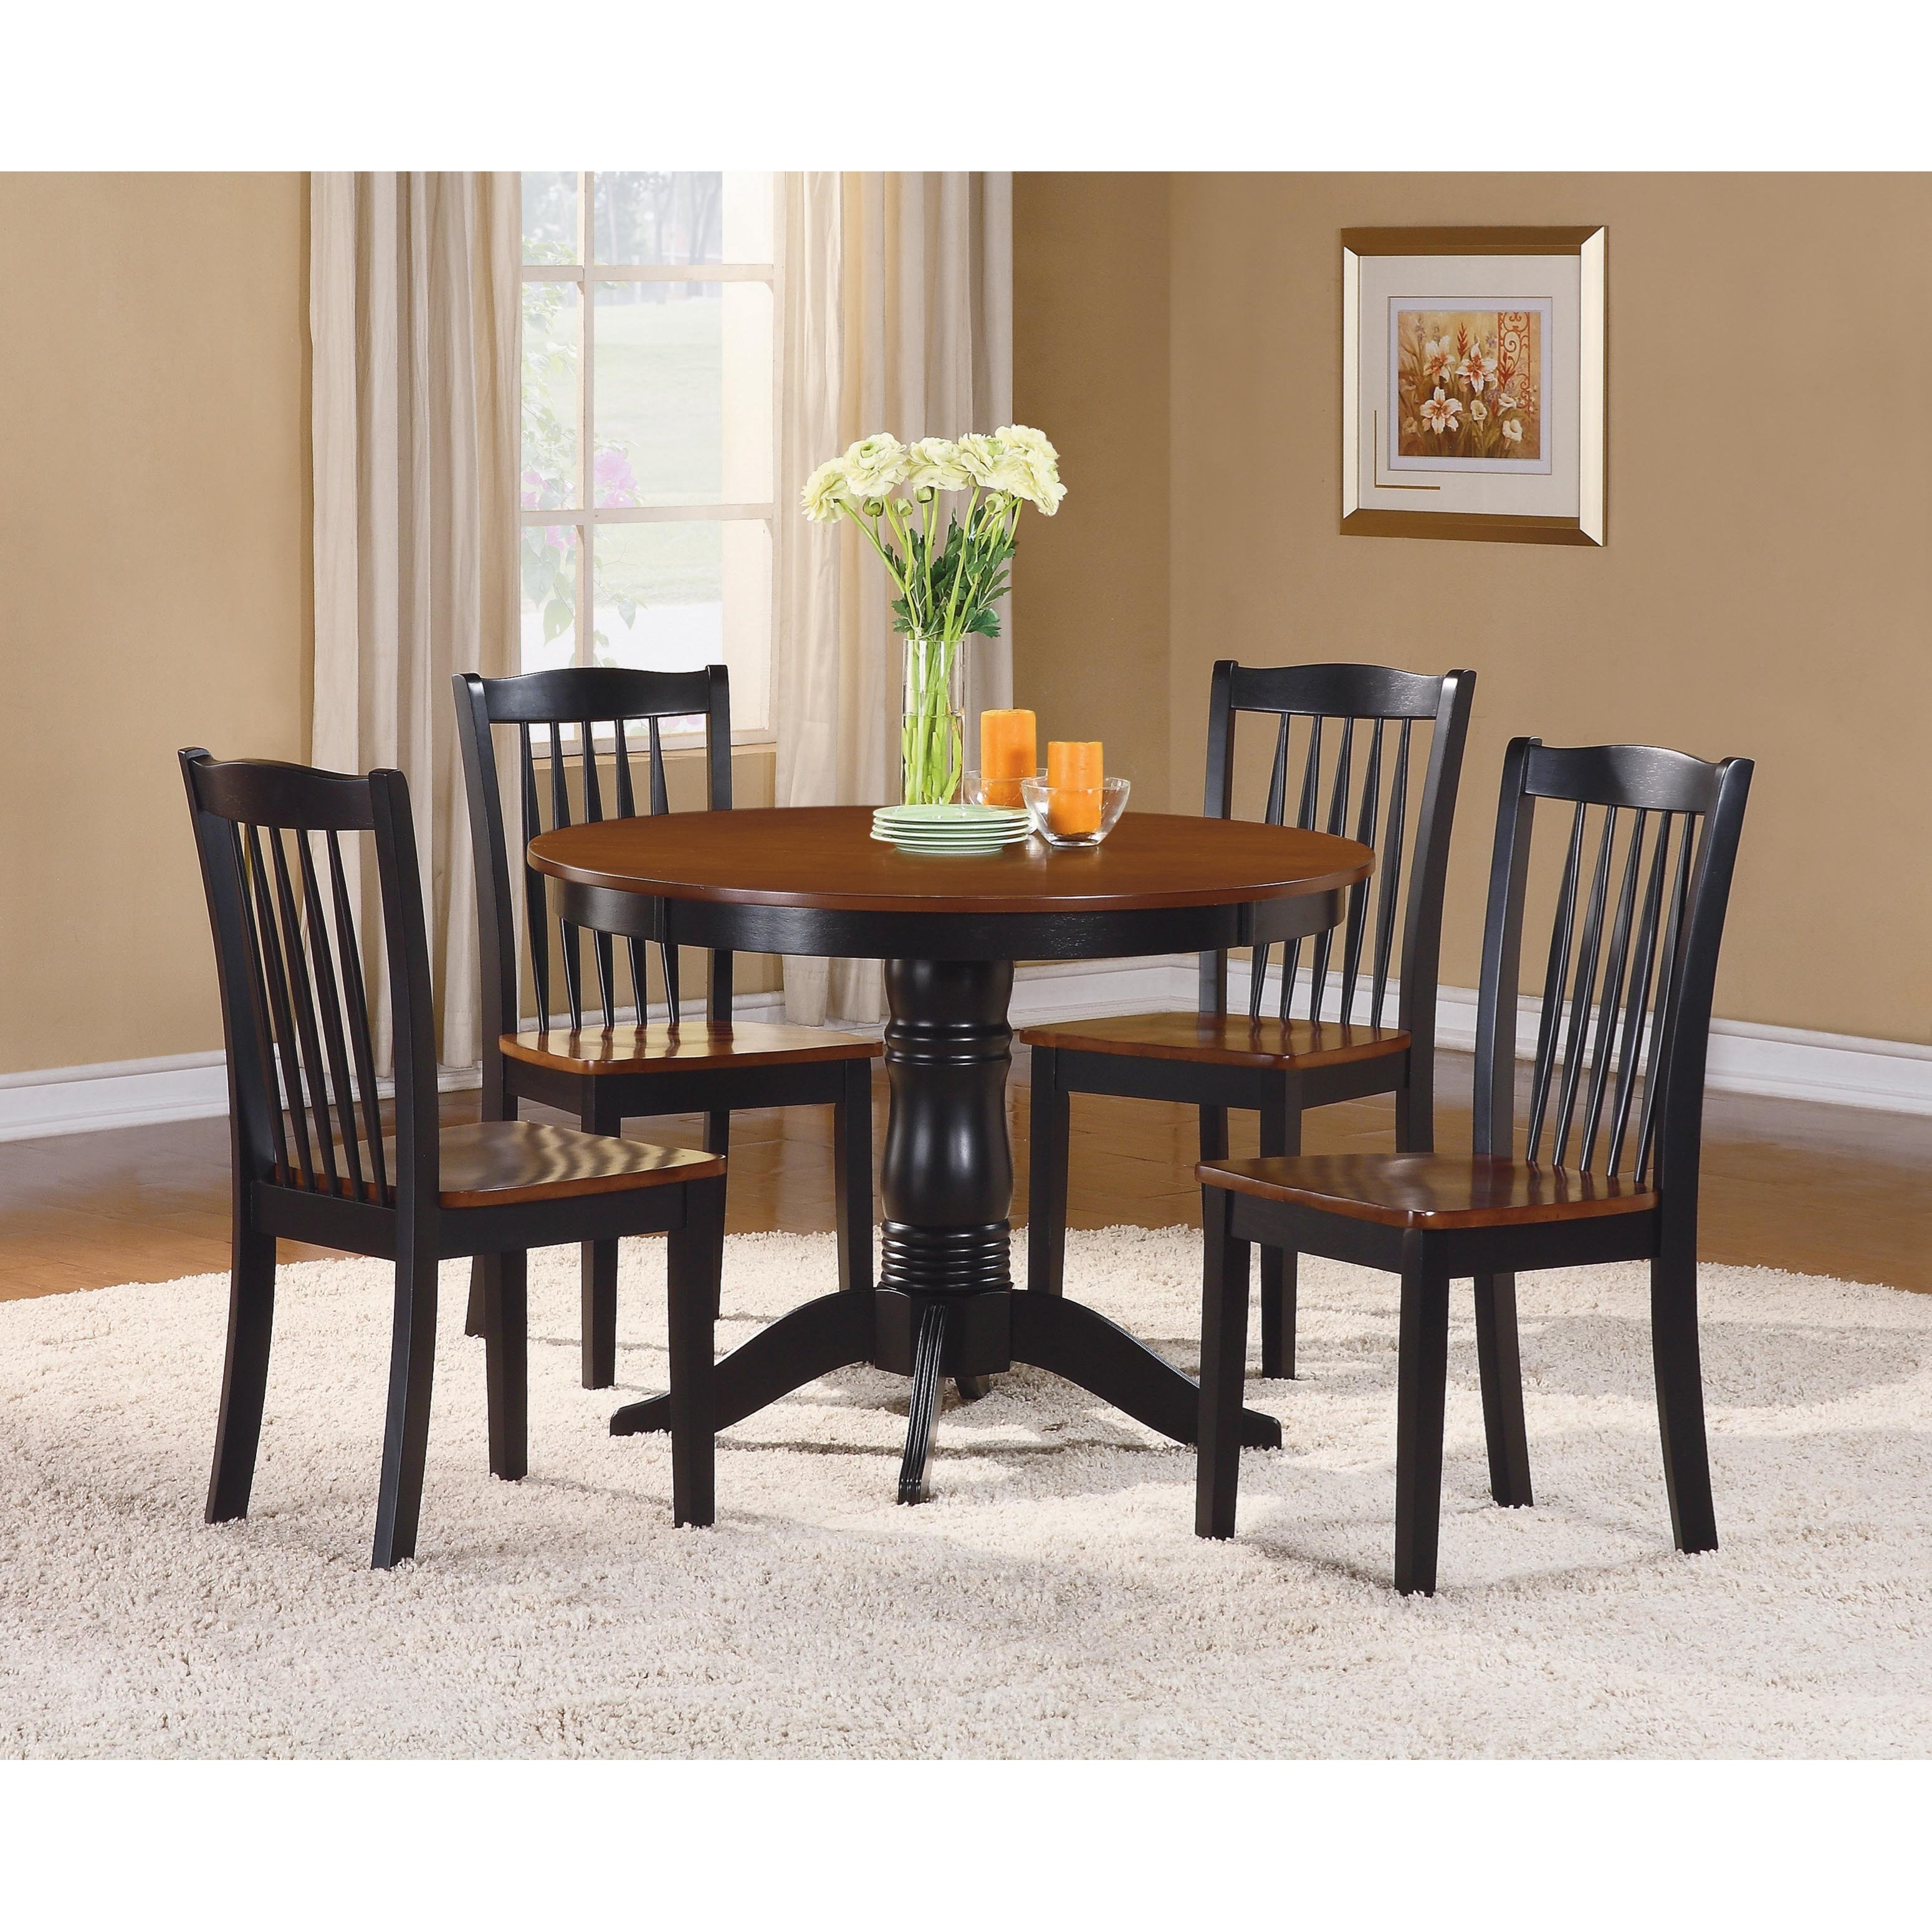 Andover Table and Chair Set by Homelegance at Carolina Direct